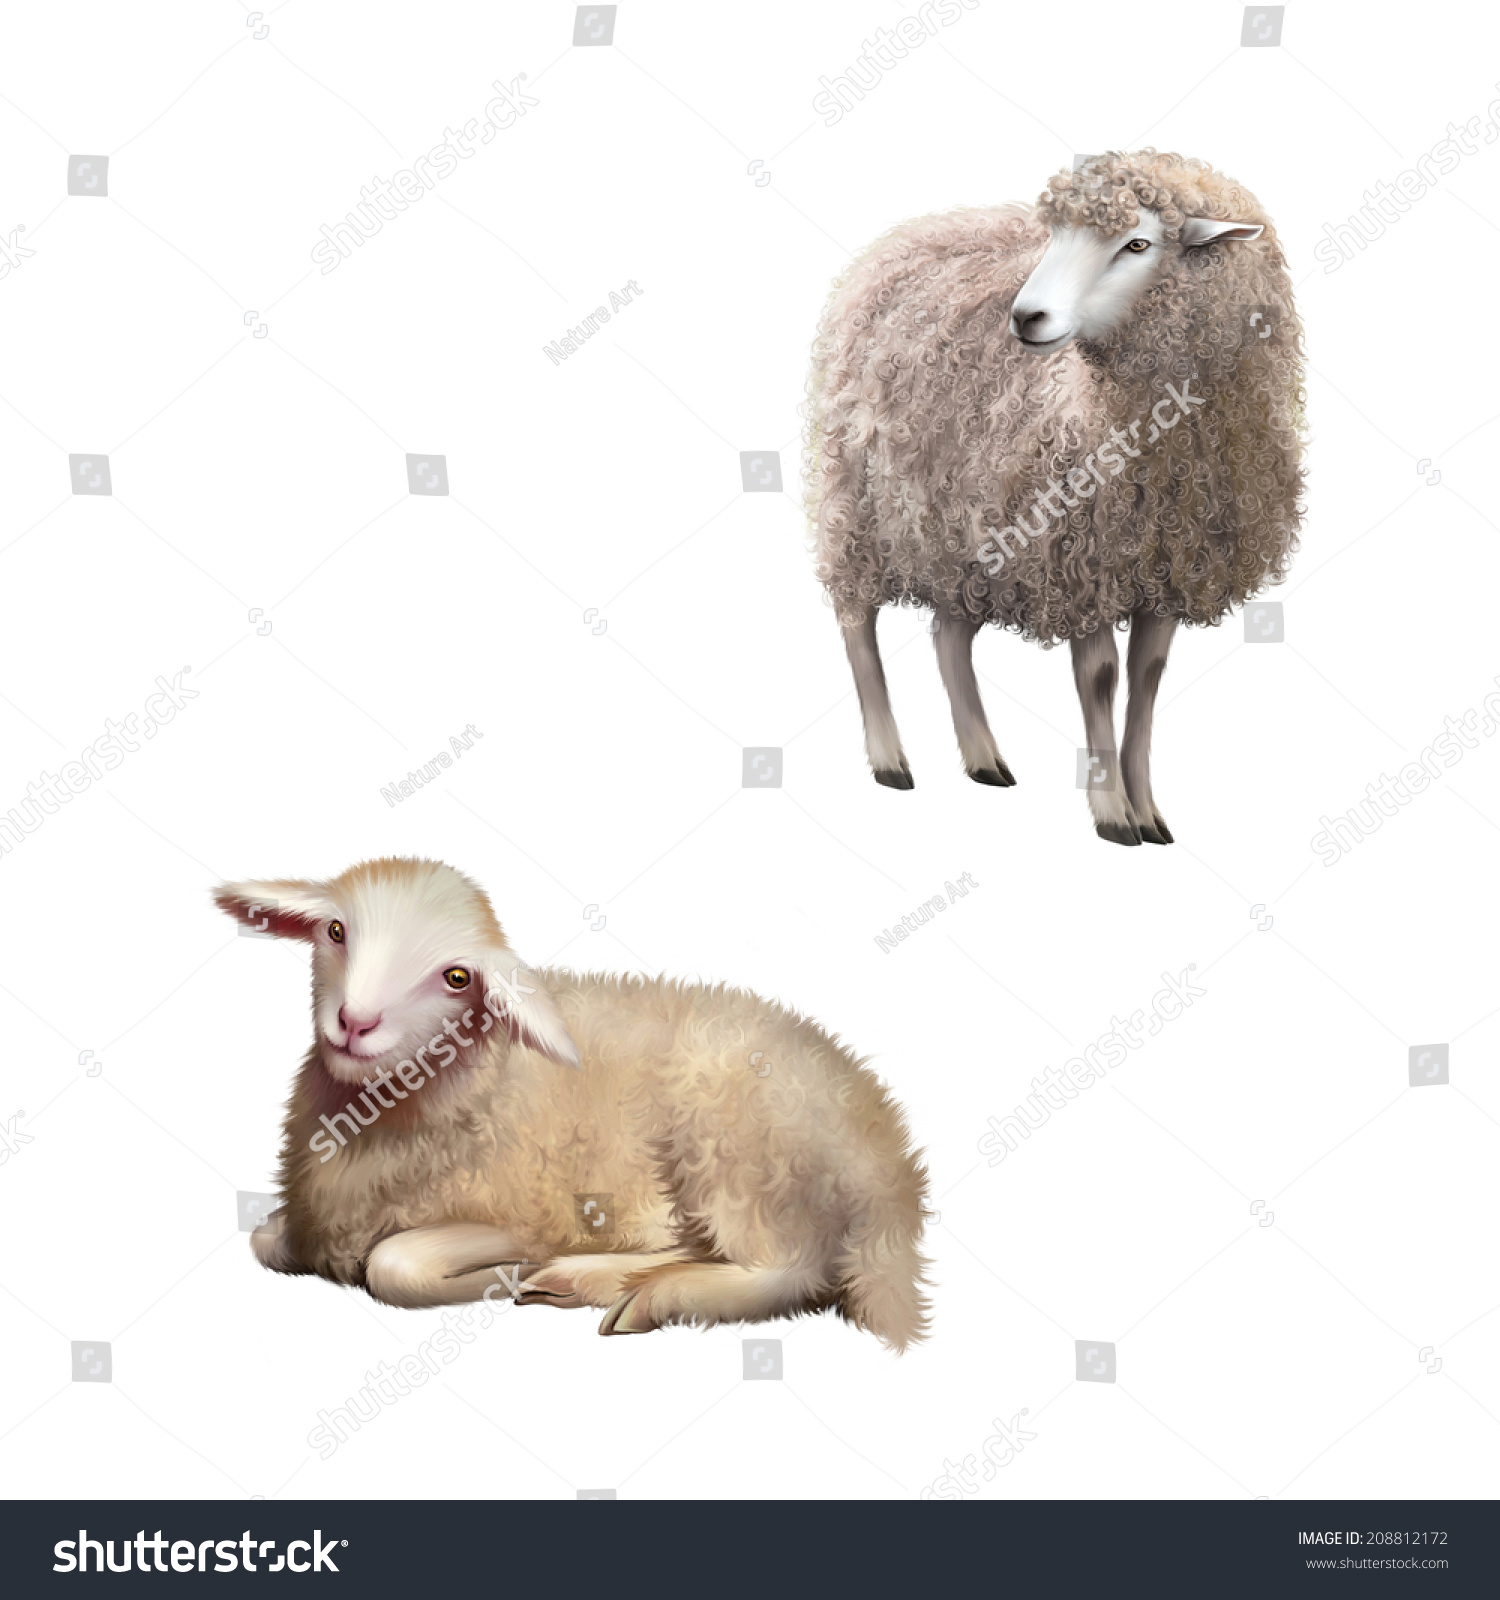 Illustration Front View Sheep Looking Away Stock